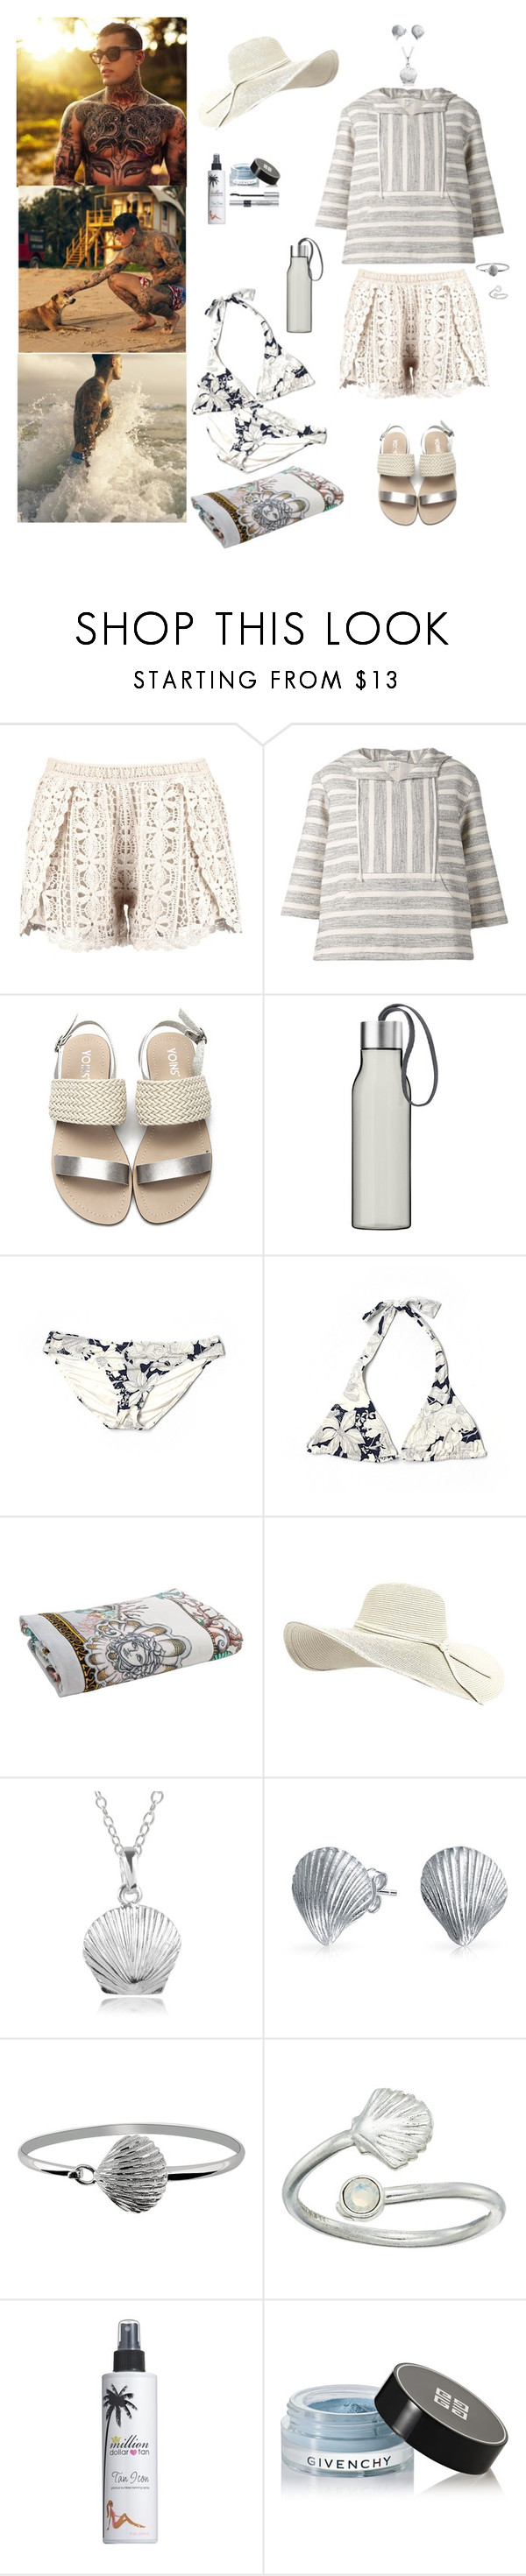 """""""Weekend Getaway"""" by blackmagicmomma ❤ liked on Polyvore featuring Boohoo, SUNO New York, Eva Solo, J.Crew, Versace, Journee Collection, Bling Jewelry, BillyTheTree, Alex and Ani and Million Dollar Tan"""